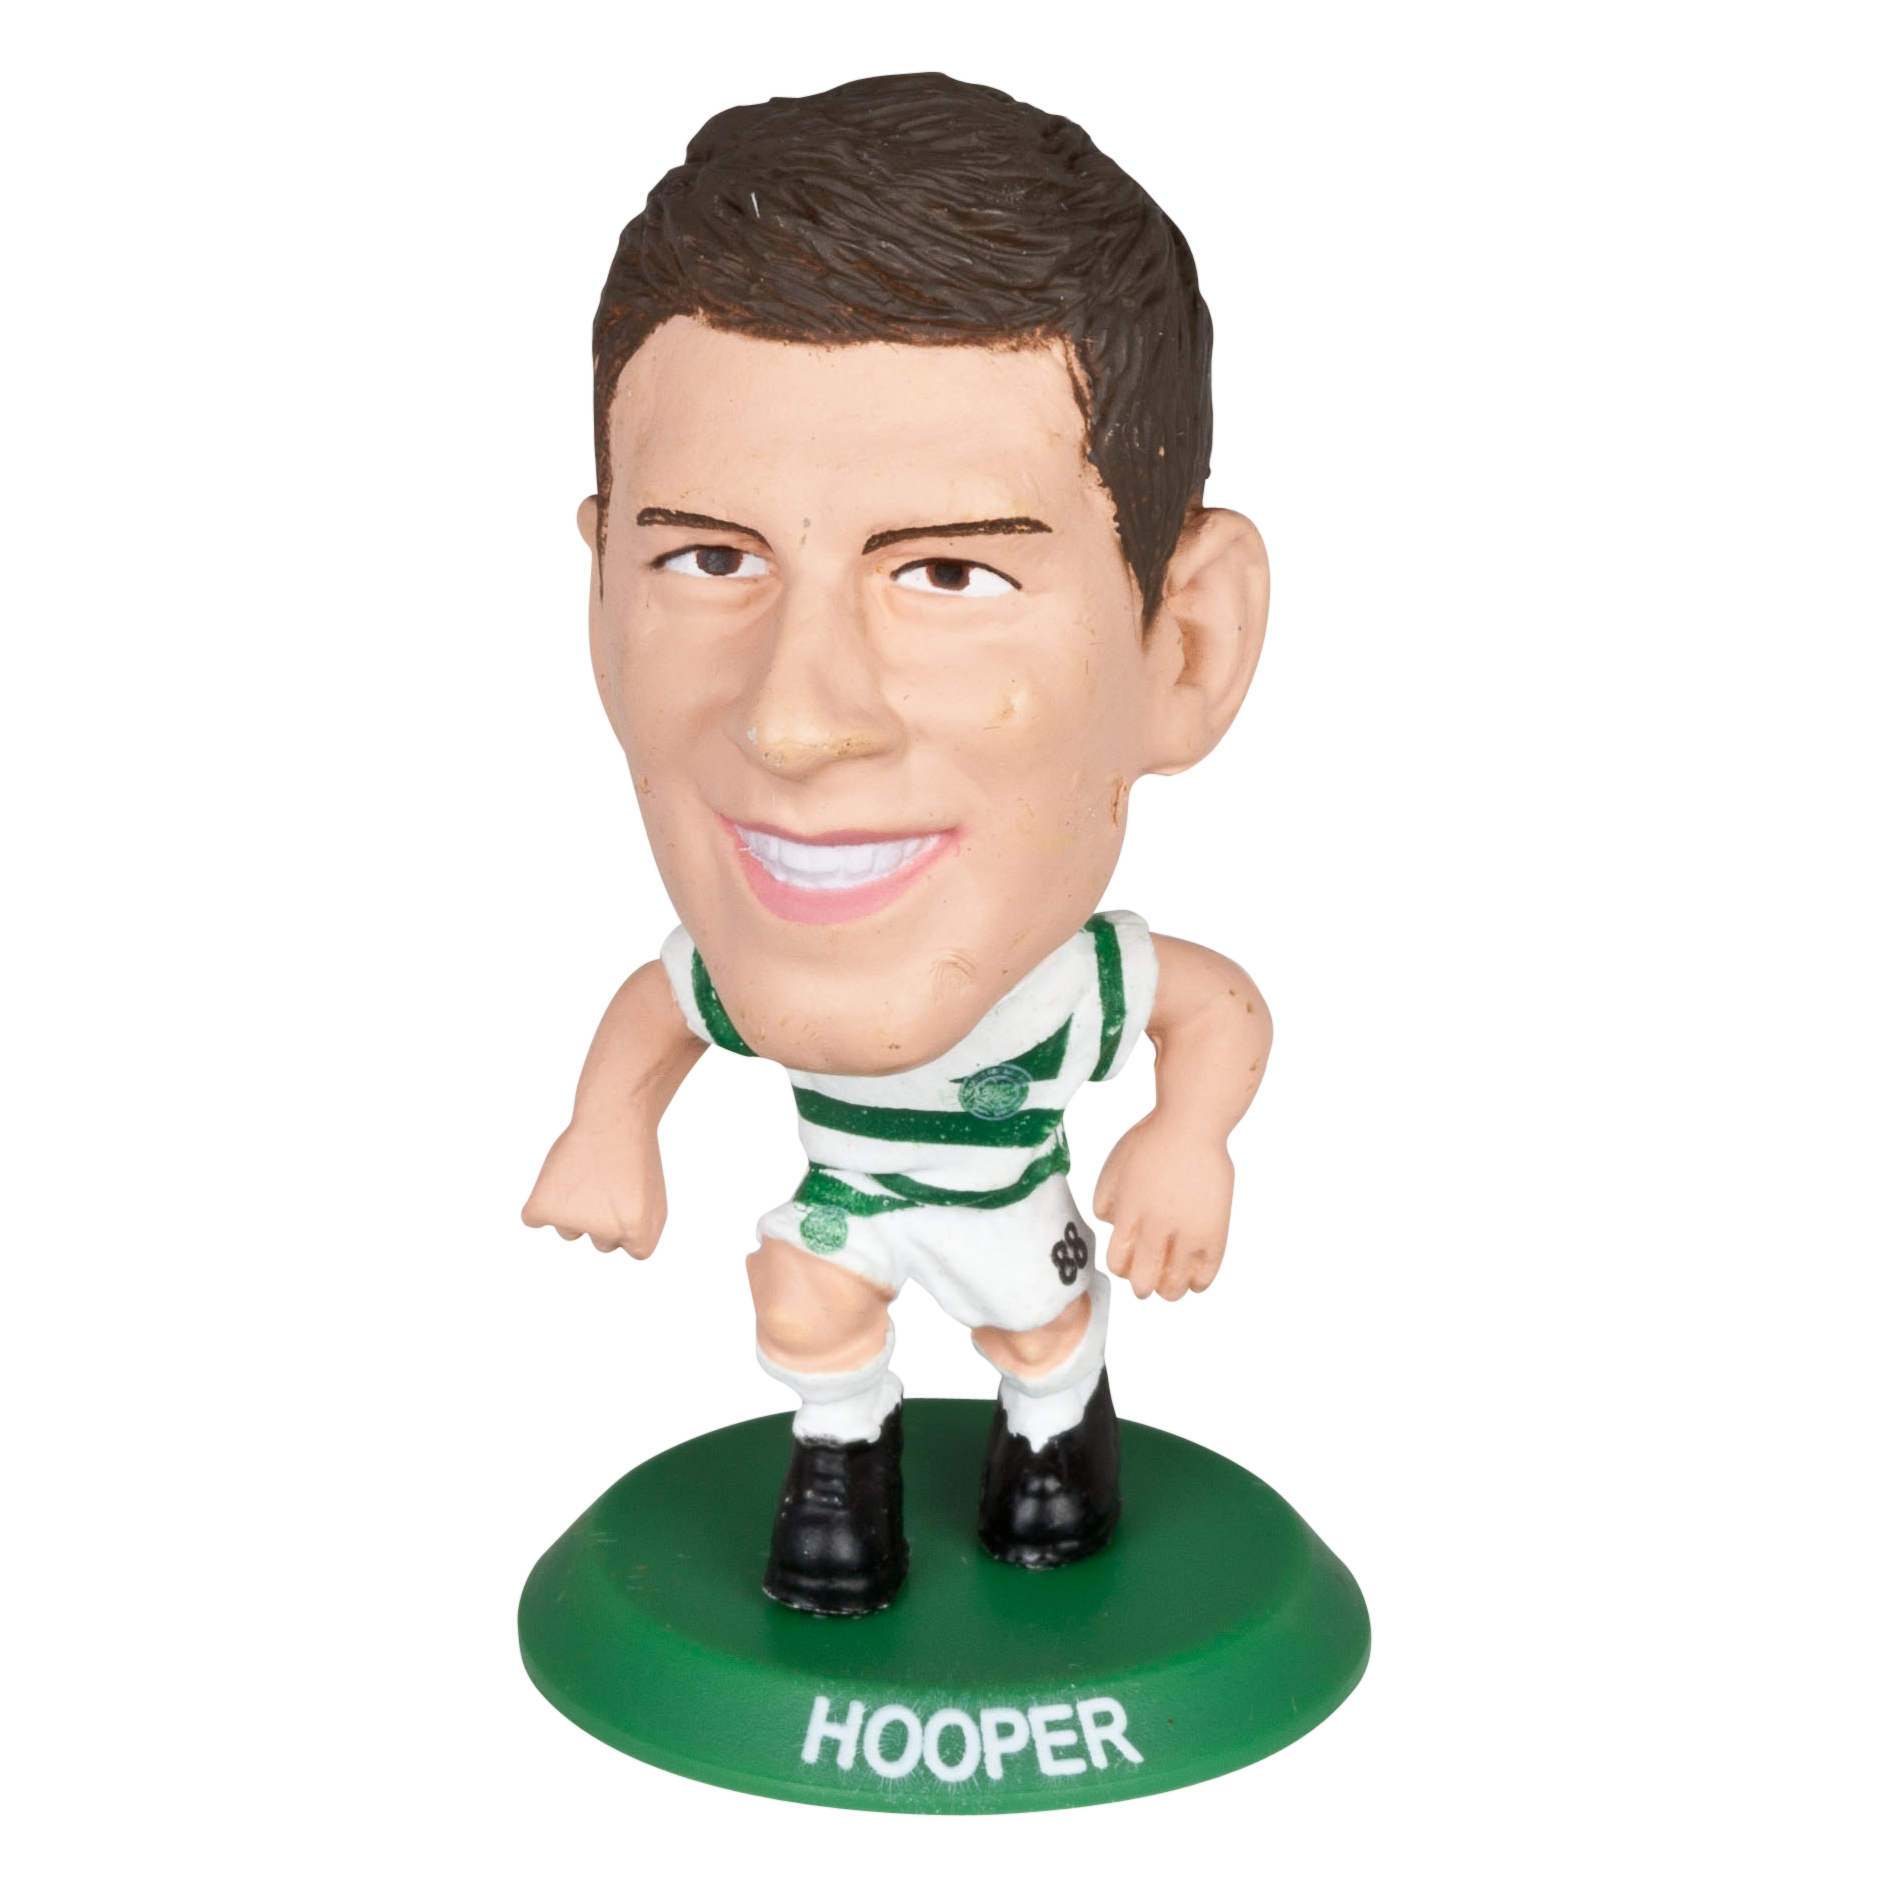 Celtic Hooper Home Kit 2012/13 Soccer Starz